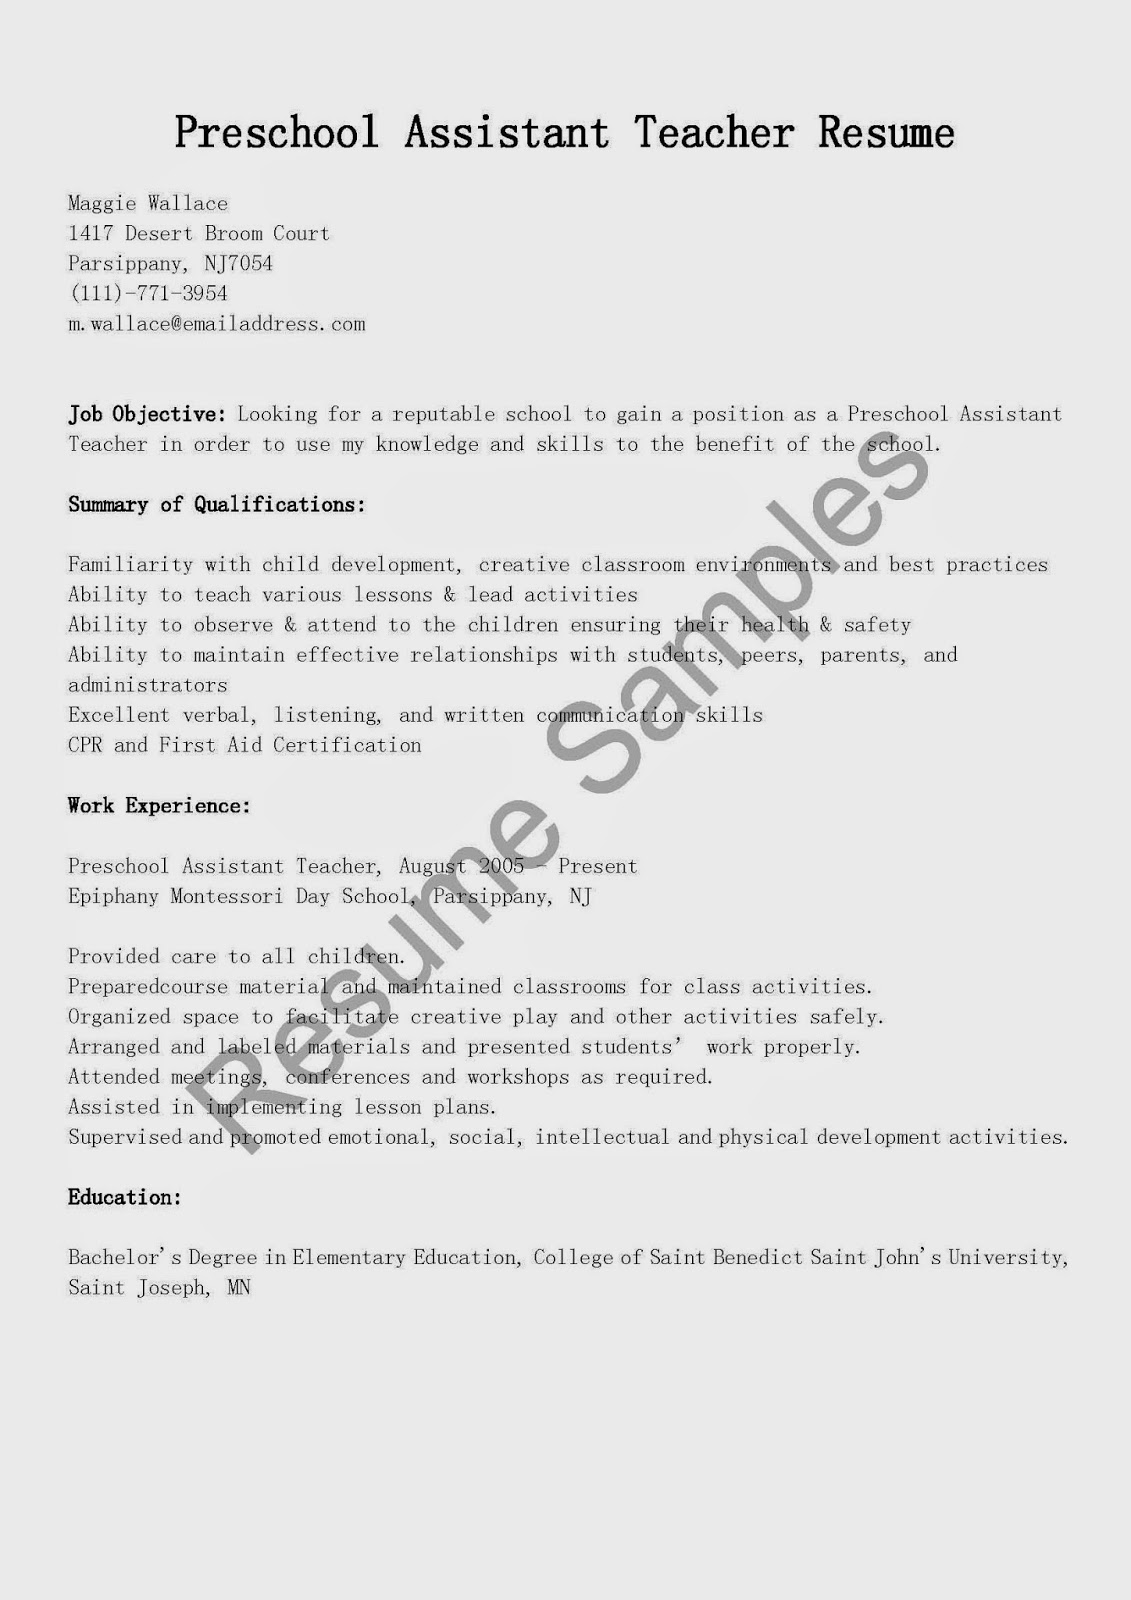 Resume For Assistant Teacher Resume Samples Preschool Assistant Teacher Resume Sample